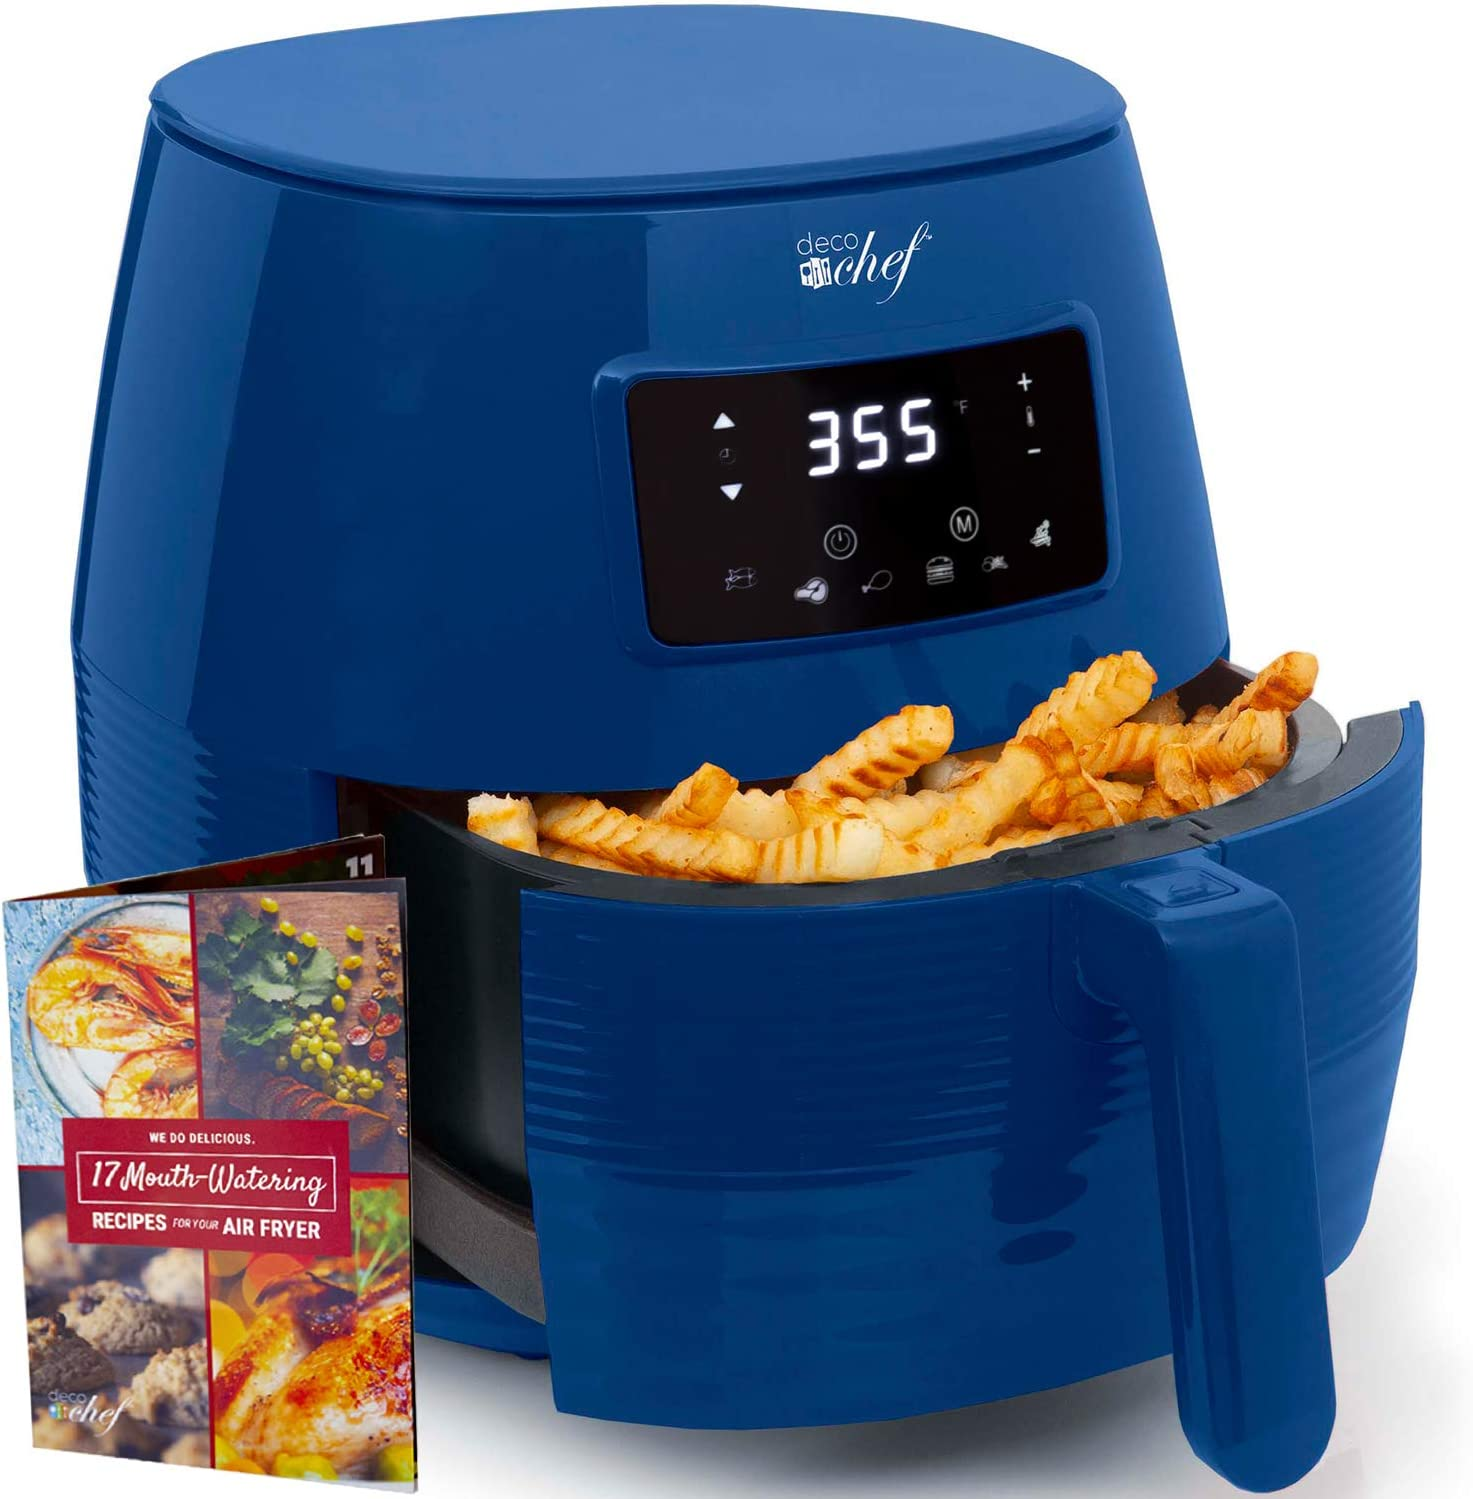 Deco Chef 5.8QT Digital Electric Air Fryer with Accessories and Cookbook- Air Frying, Roasting, Baking, Crisping, and Reheating for Healthier and Faster Cooking (Blue)